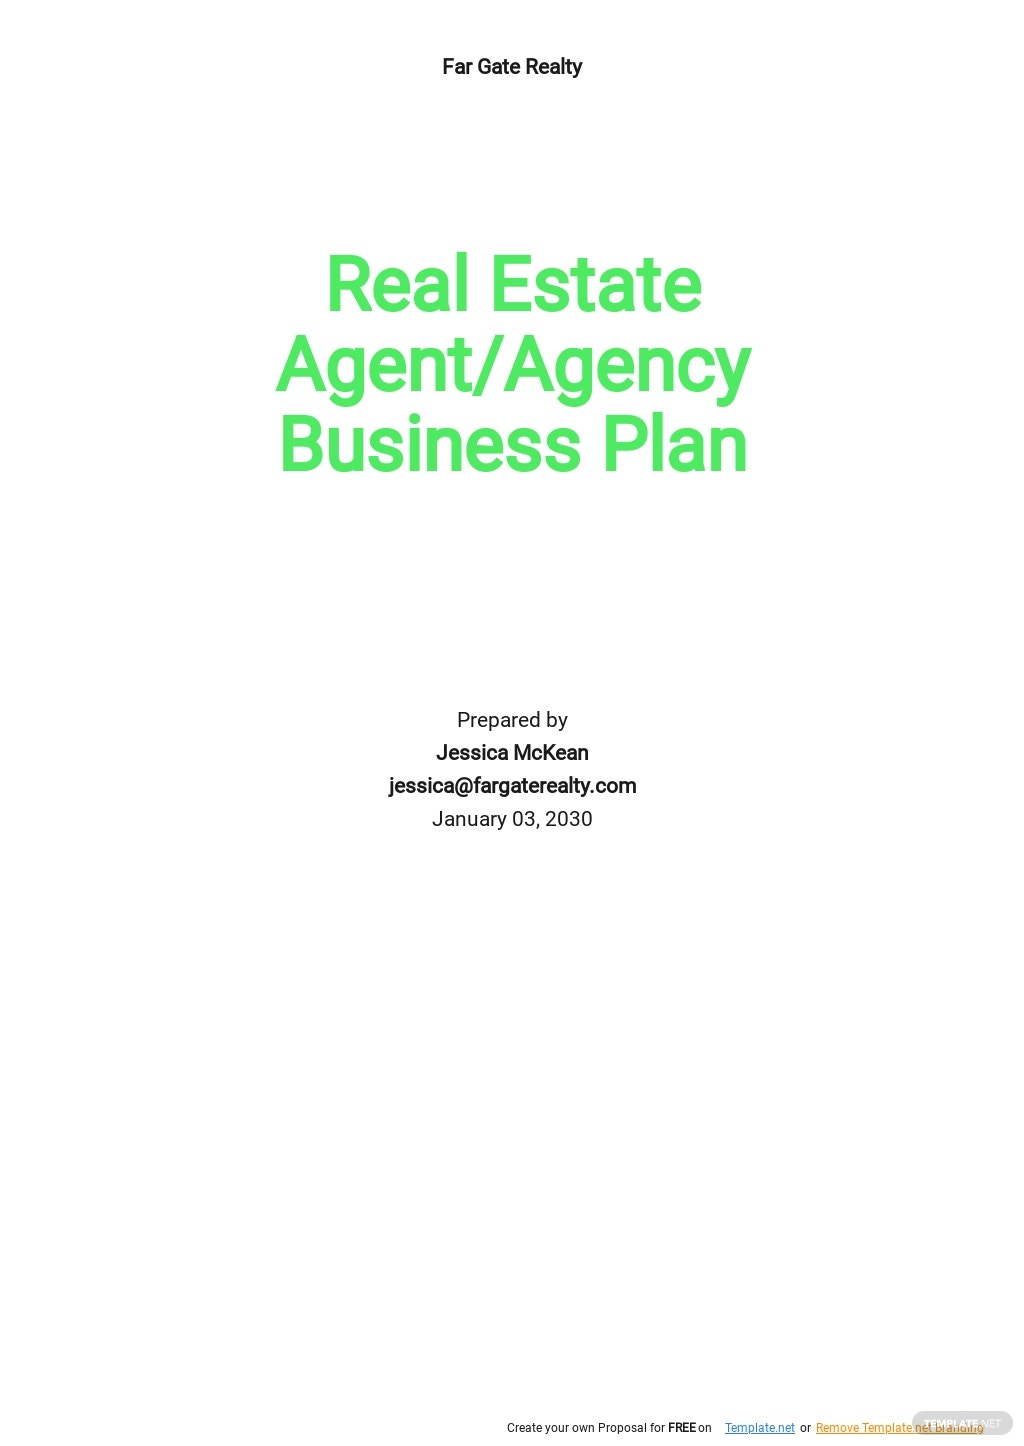 Real Estate Agent/Agency Business Plan Template.jpe